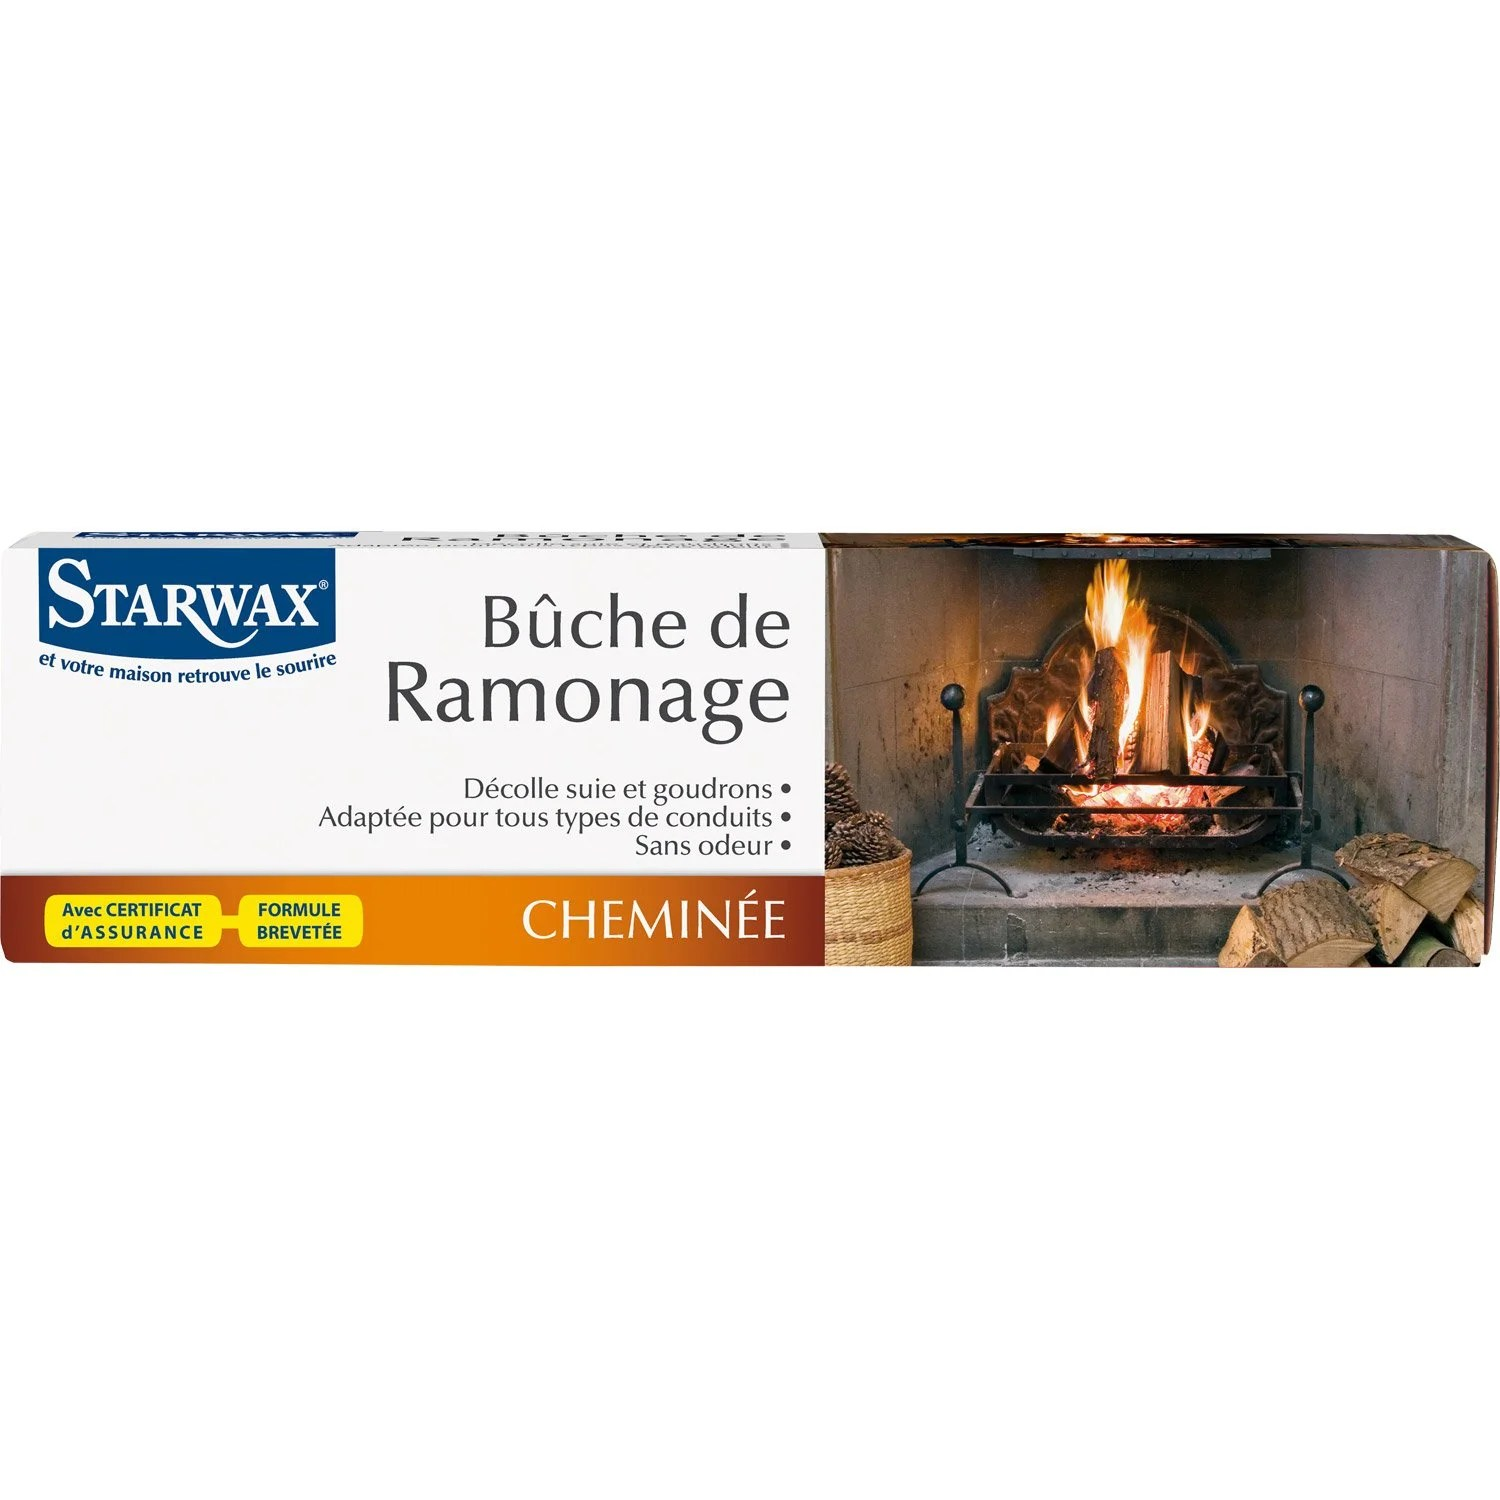 Ramonage Cheminee Vannes Bûche De Ramonage Starwax 1 3 Kg